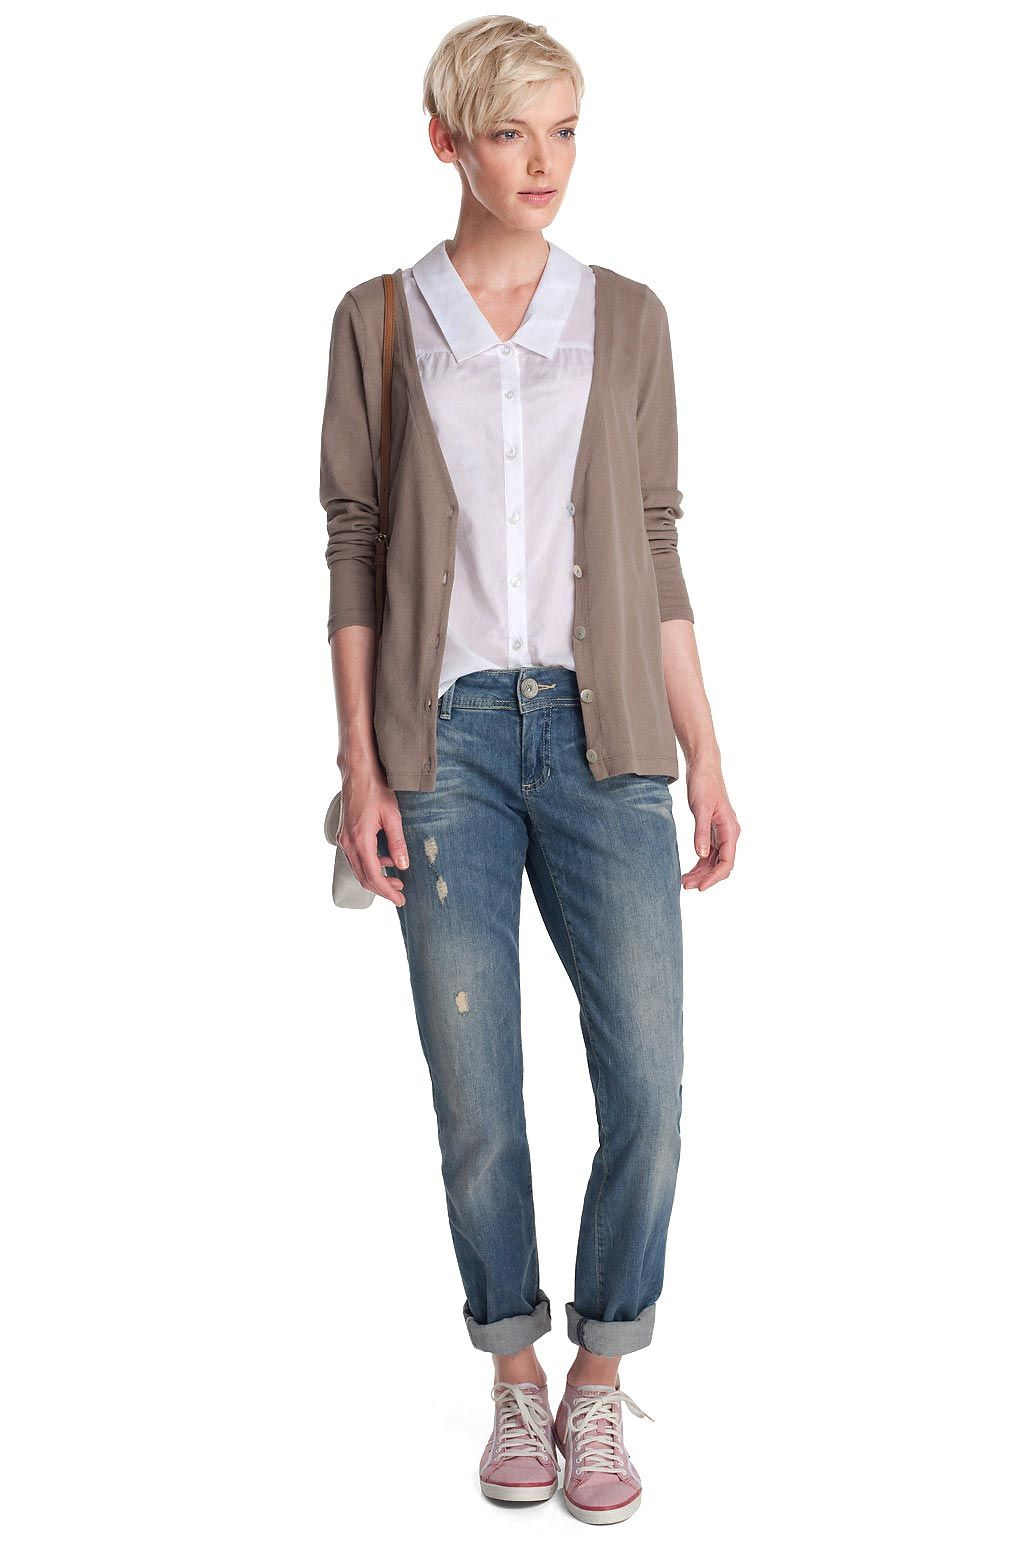 c65feedc20ae Esprit Online-Shop - Clothing   accessories for women